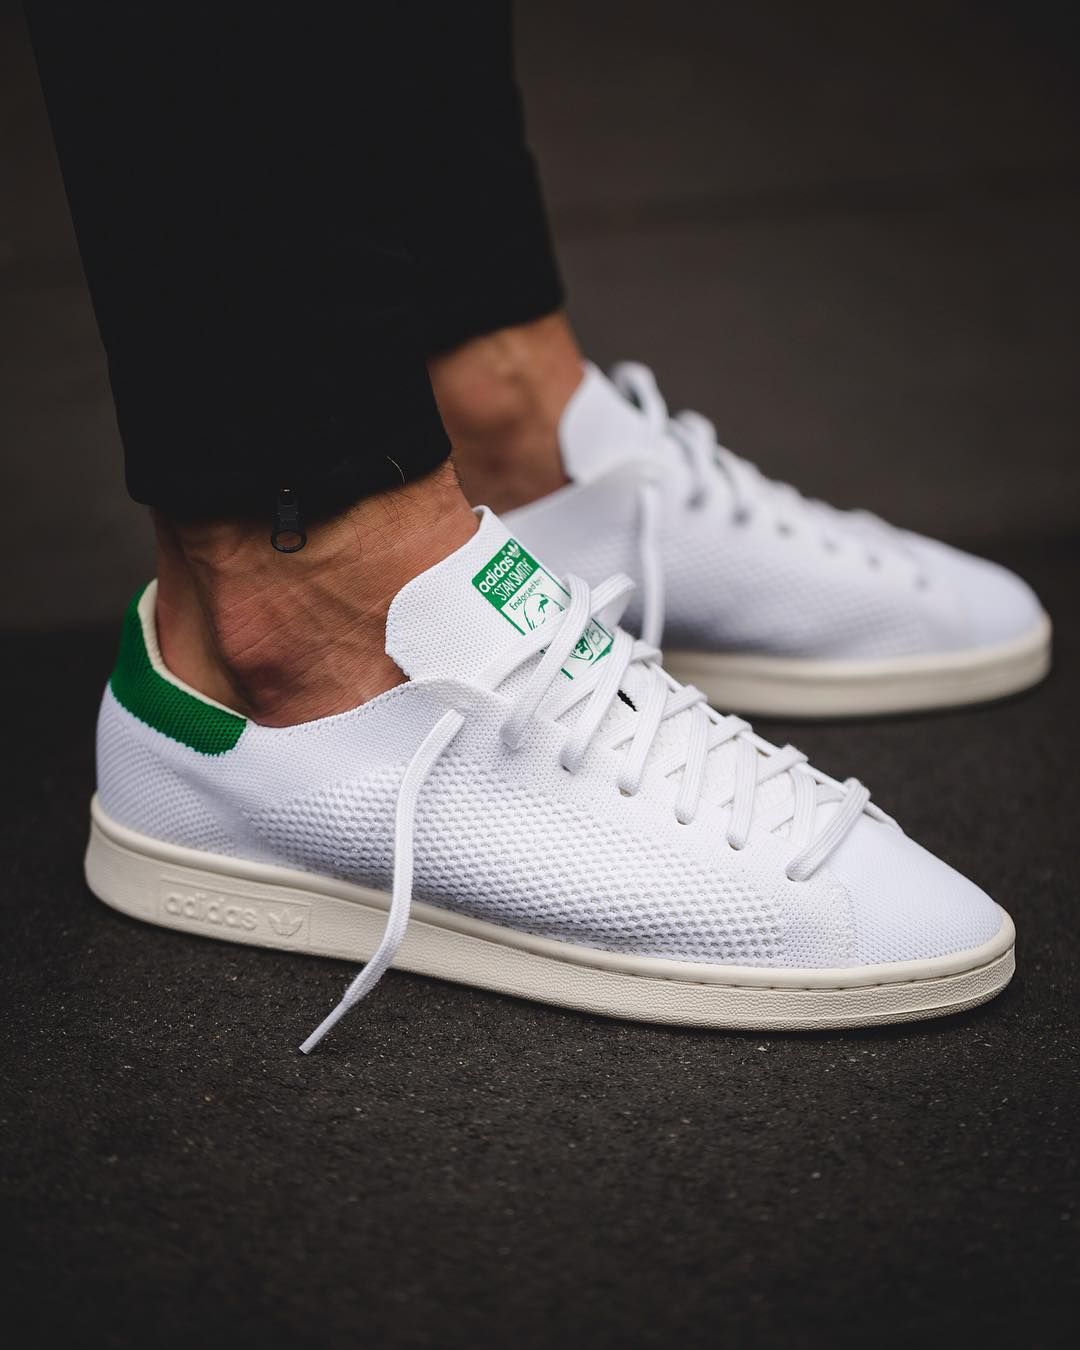 buy popular 95e71 febe4 ADIDAS Stan Smith Primeknit Green    Follow  filetlondon for more street  style  filetlondon